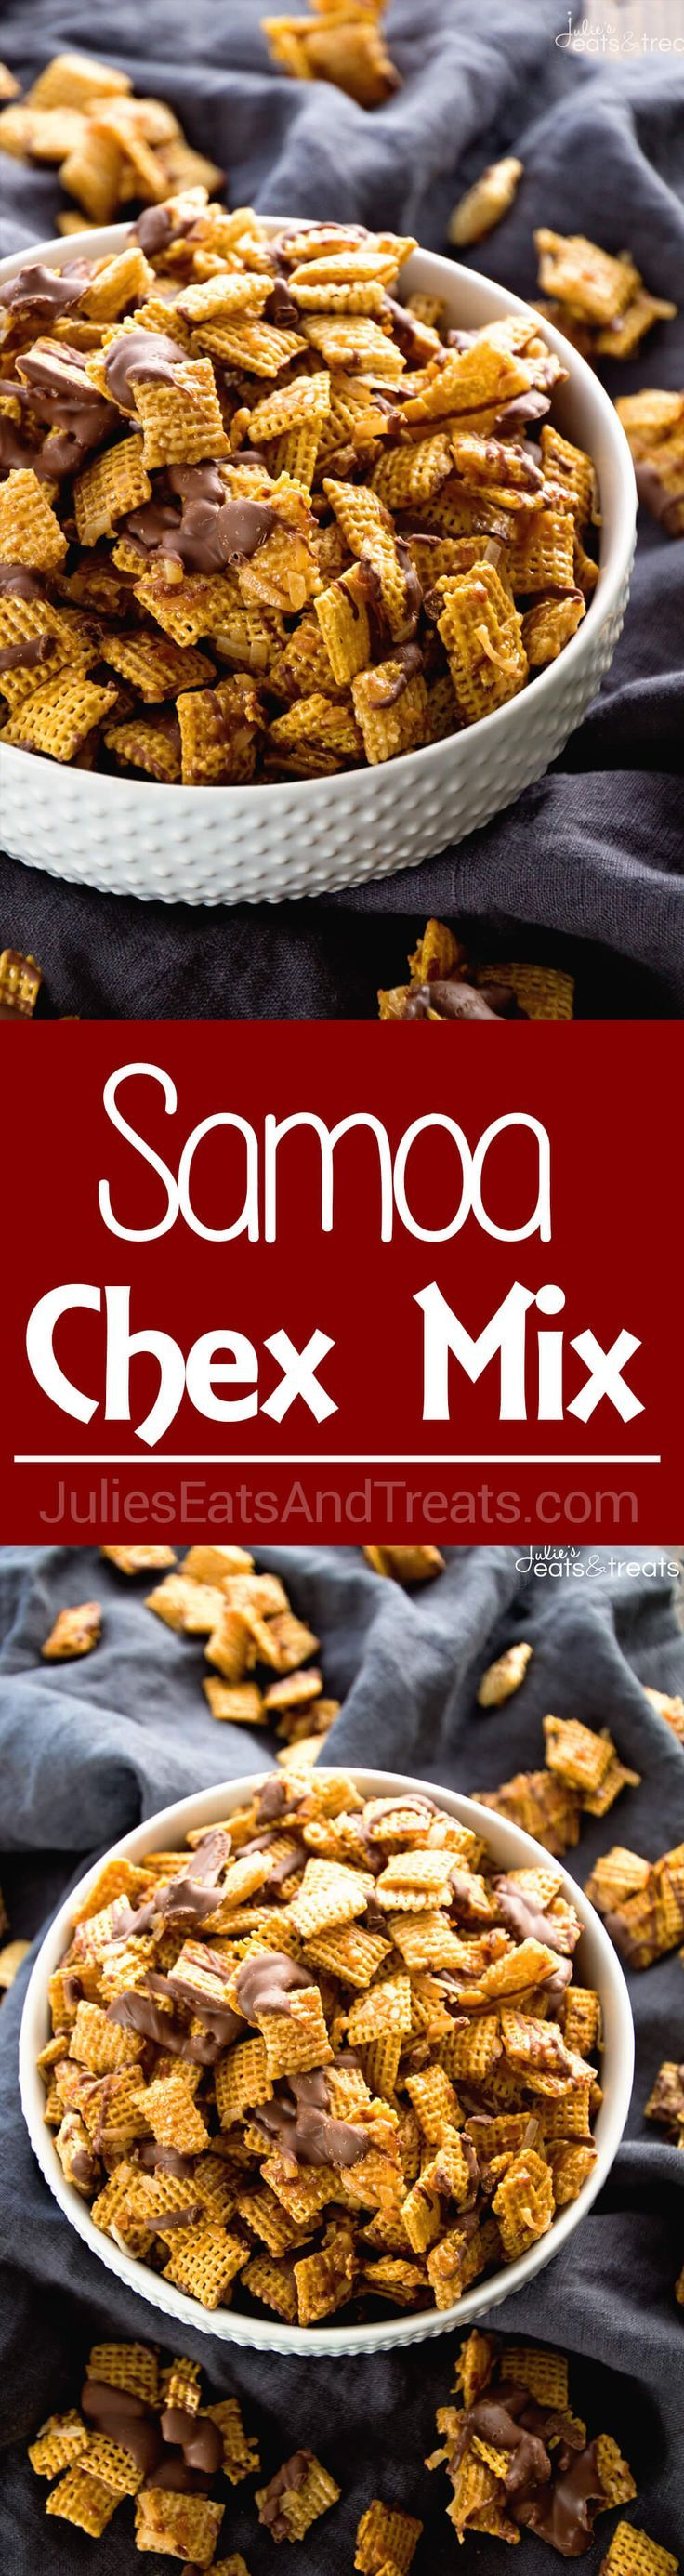 Samoa Chex Mix ~ Easy Snack Mix Loaded with Toasted Coconut, Chocolate and Smothered in Caramel! ~ http://www.julieseatsandtreats.com